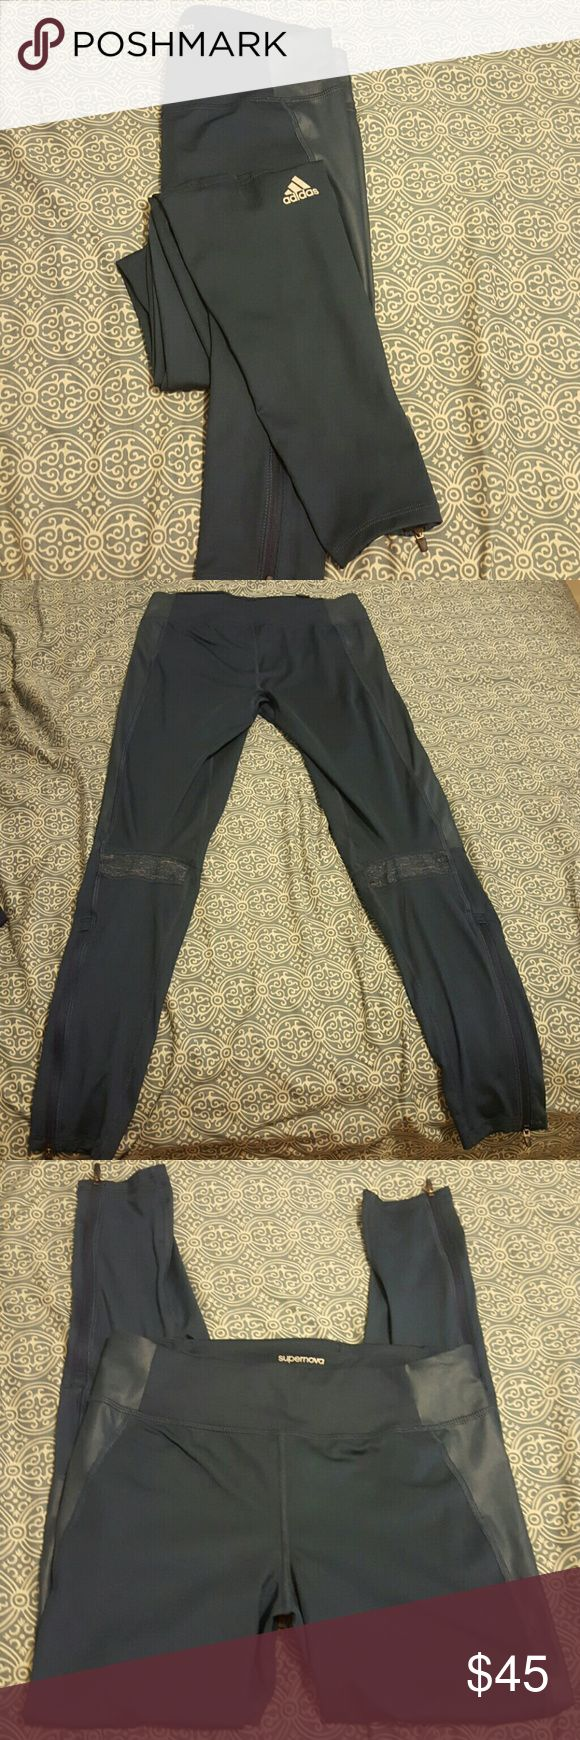 Adidas supernova tights. Adidas supernova tights. Size small great details. Zipper on ankles. Hidden zipper on the back waist. Like new. Price is firm. Adidas Pants Leggings